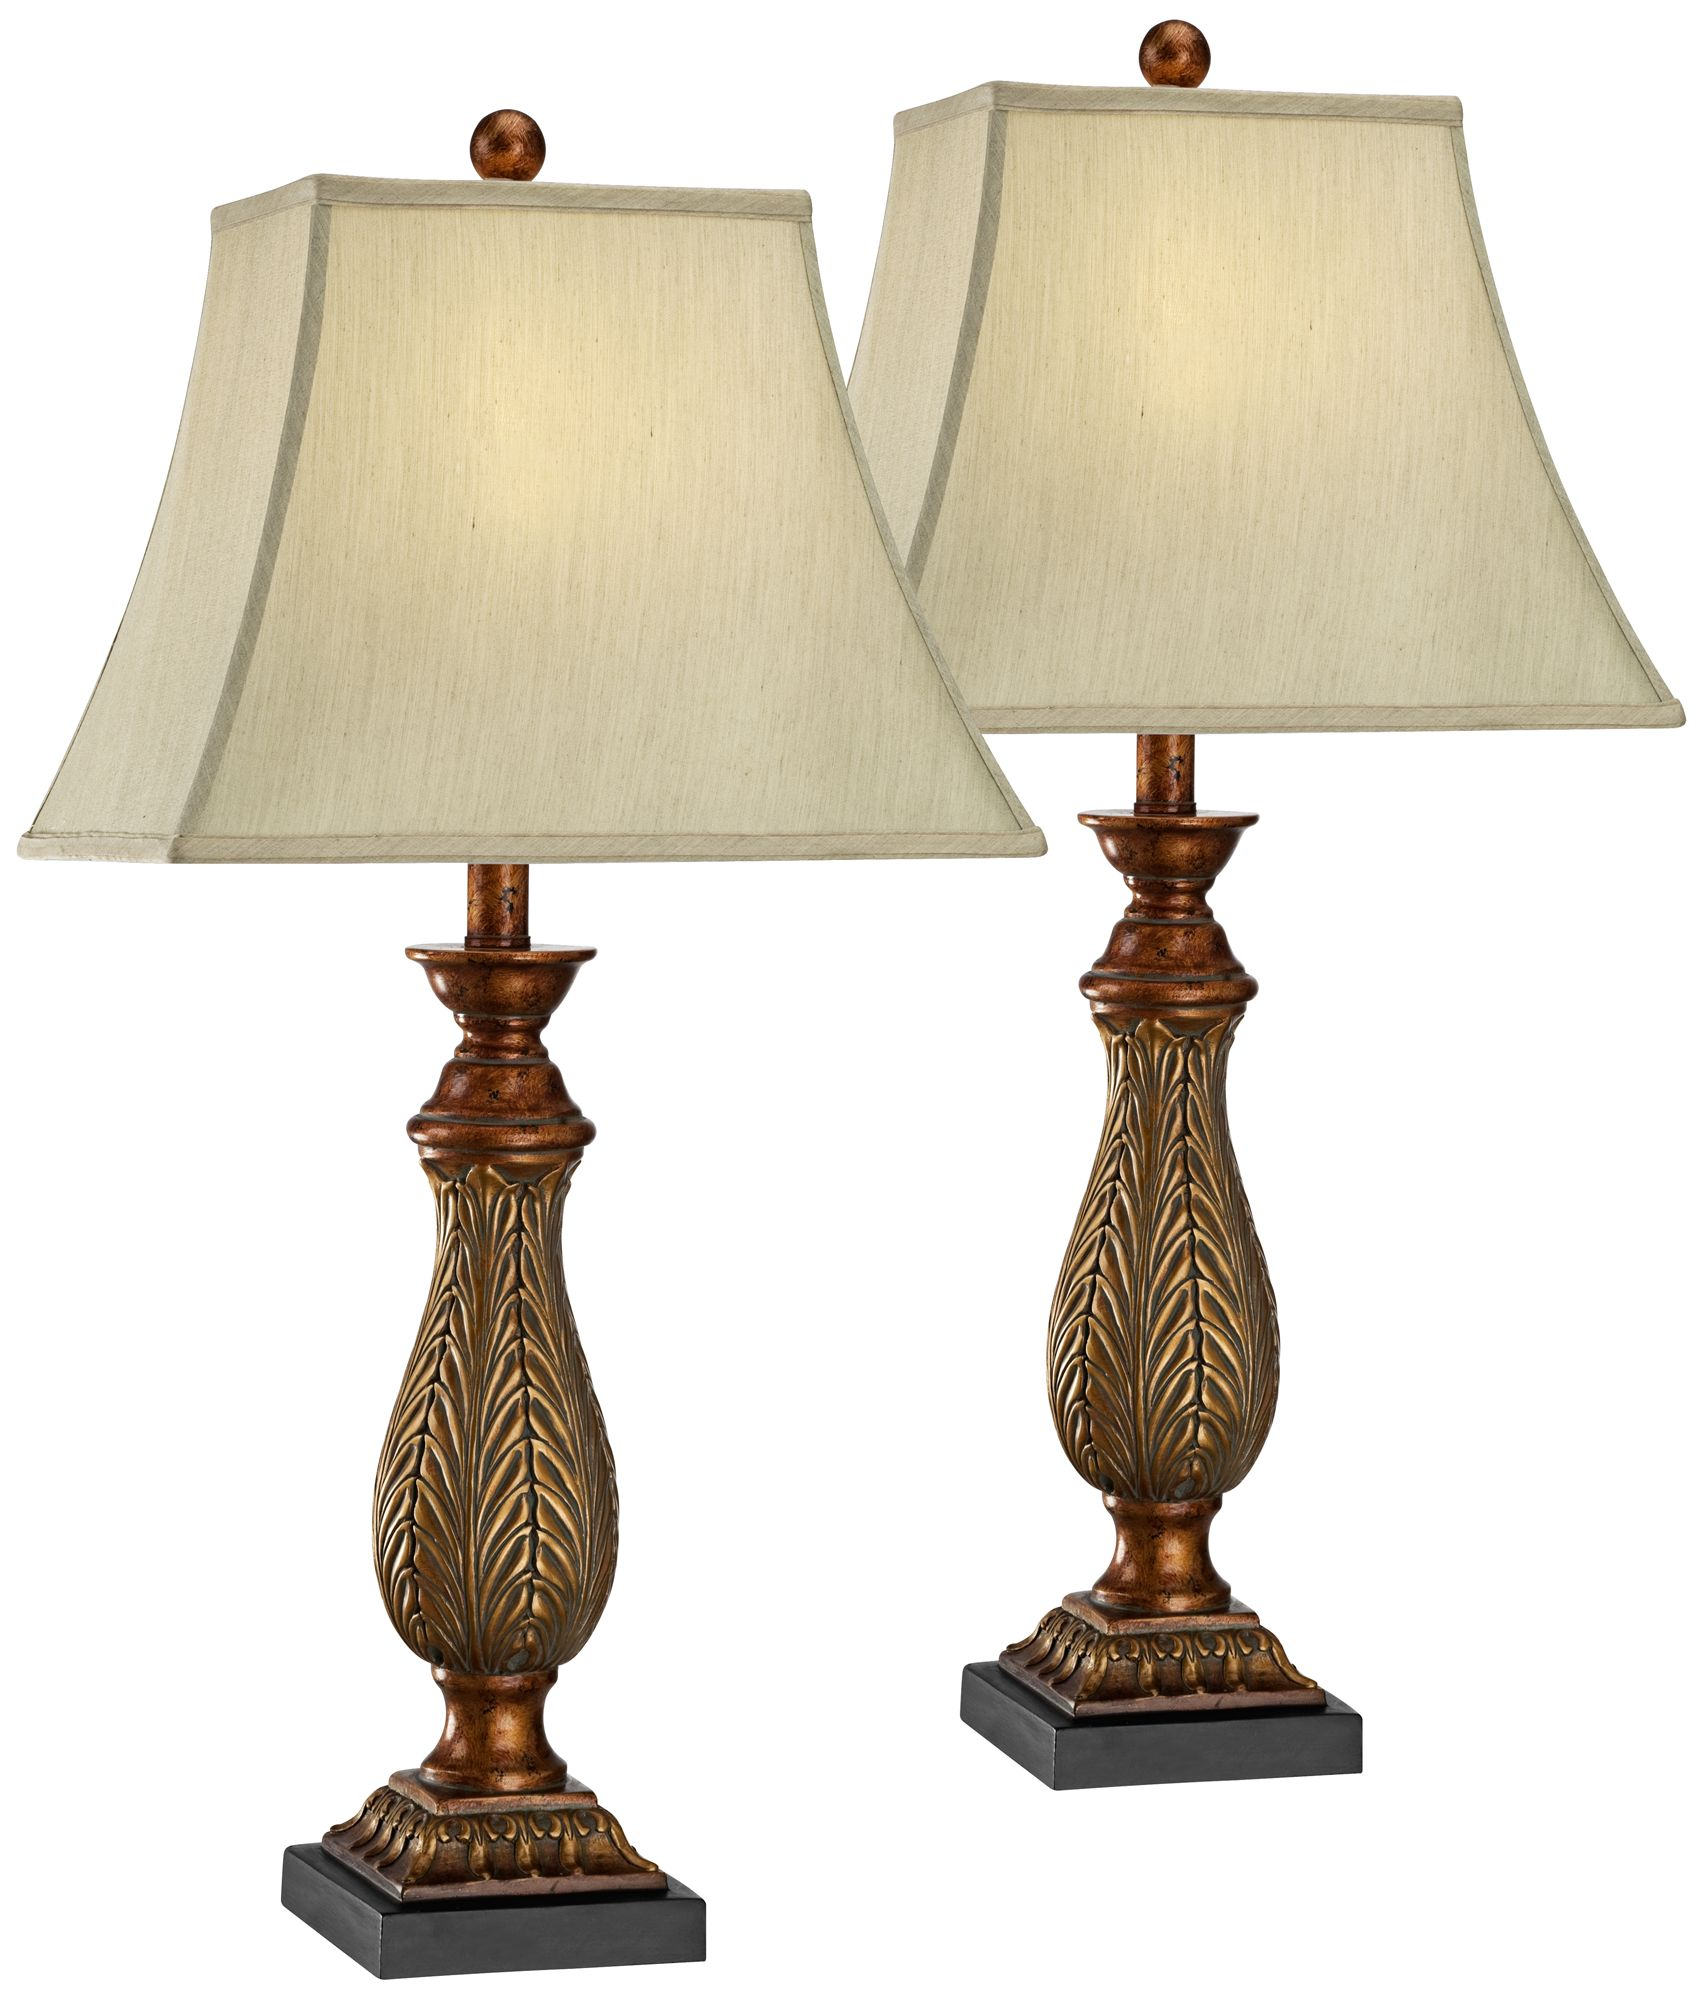 Genial Two Tone Gold Traditional Table Lamps Set Of 2